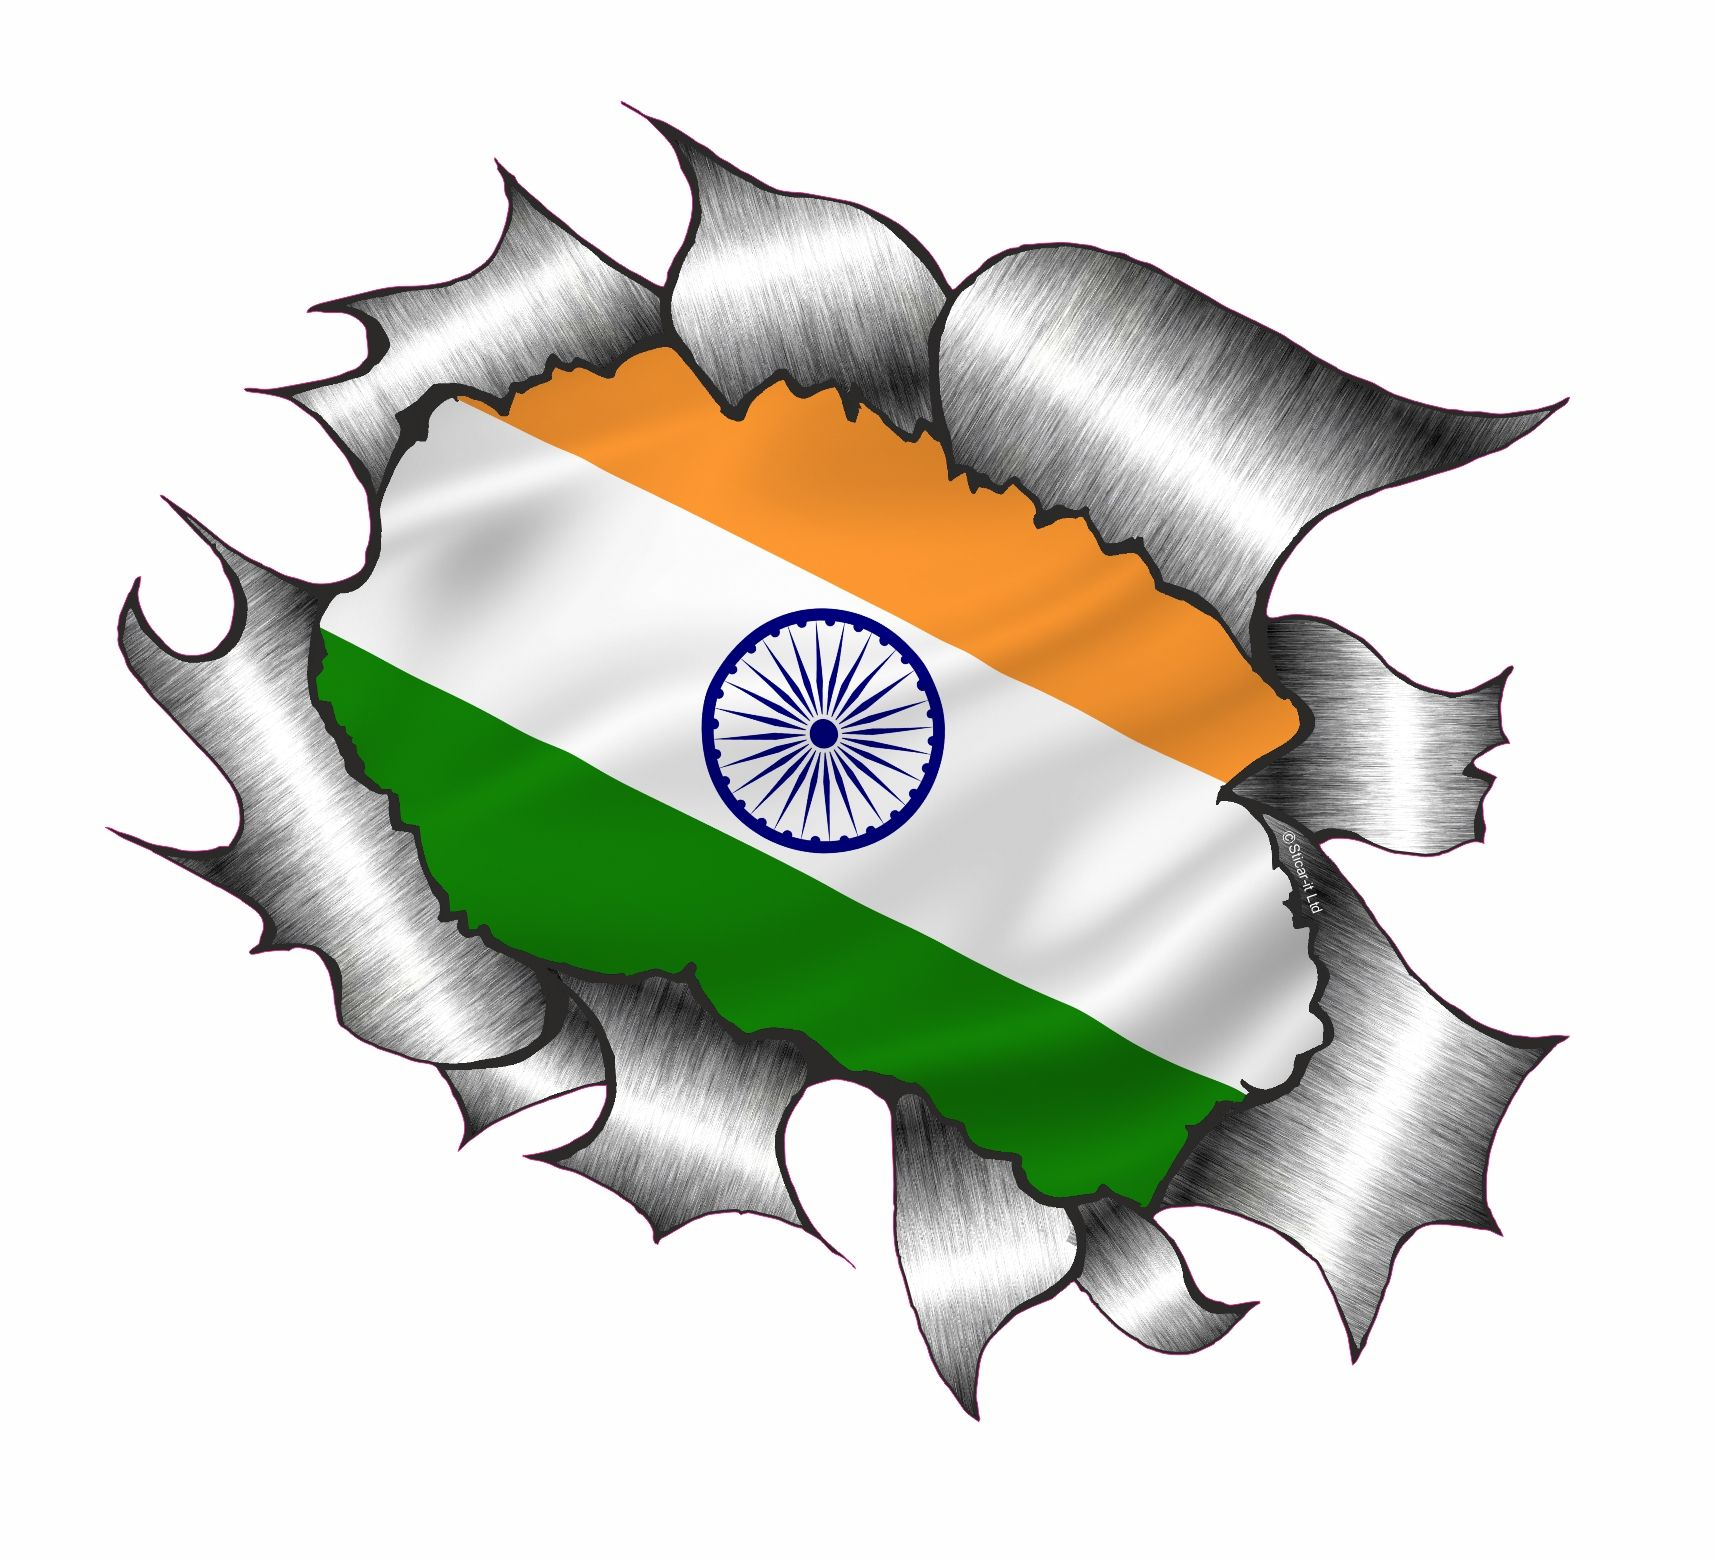 Ripped torn metal design with india indian flag motif external vinyl car sticker 105x130mm 2525 p jpg